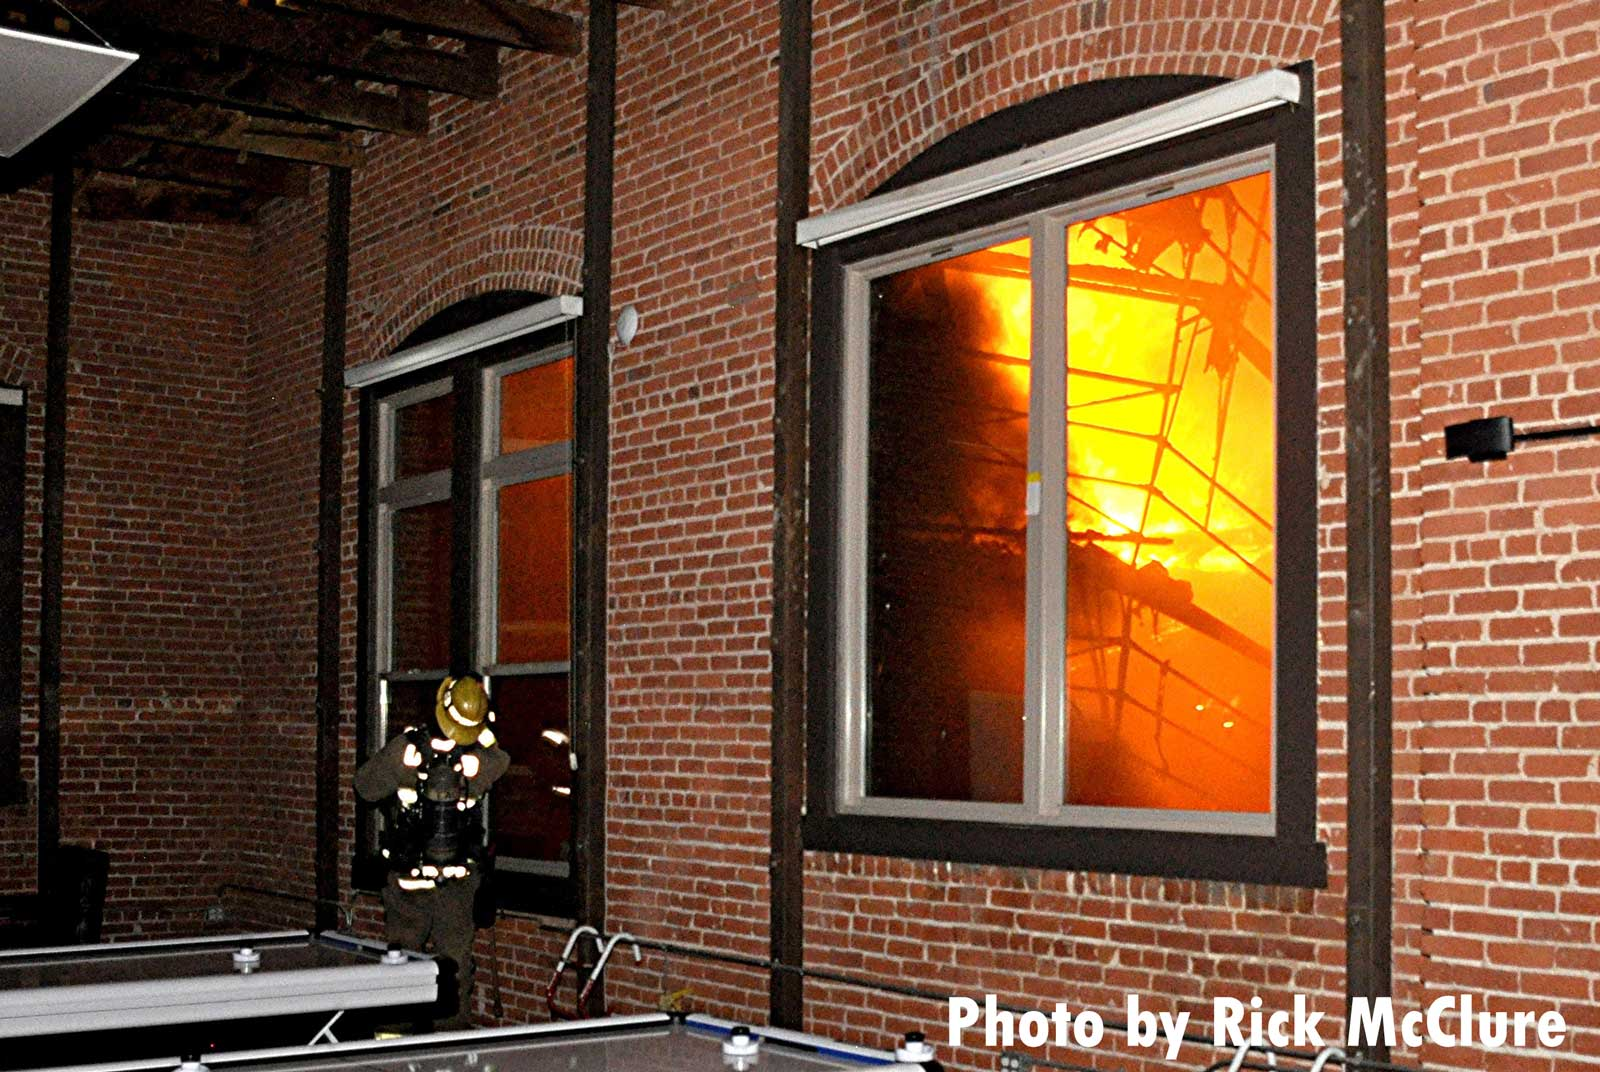 A firefighter with flames seen in the window